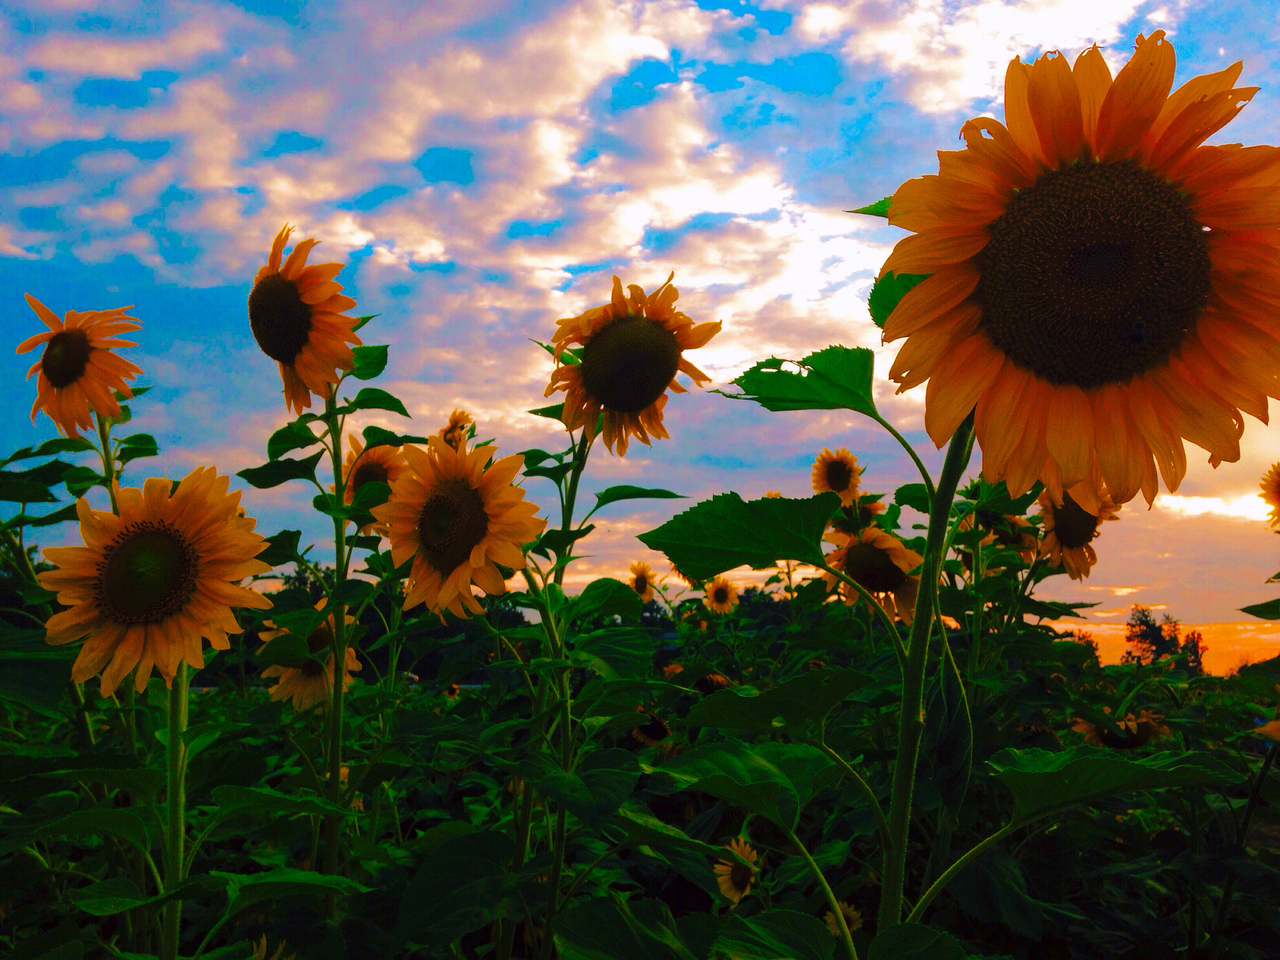 61 Images About Sunflowers On We Heart It